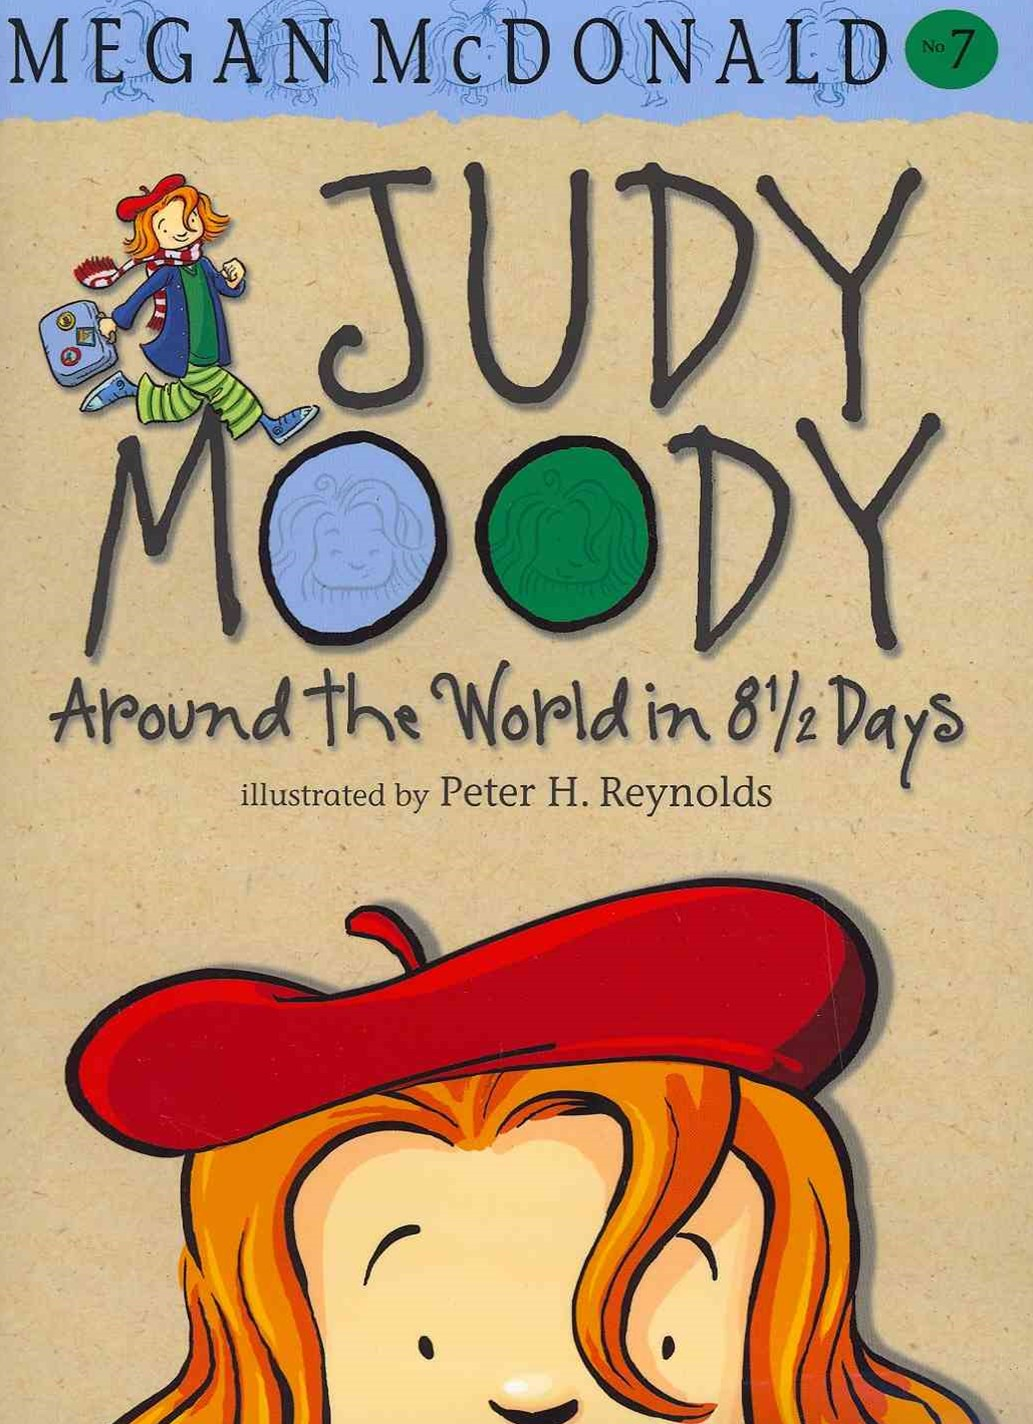 Judy Moody Book 7 Around the World in 8 1/2 Days